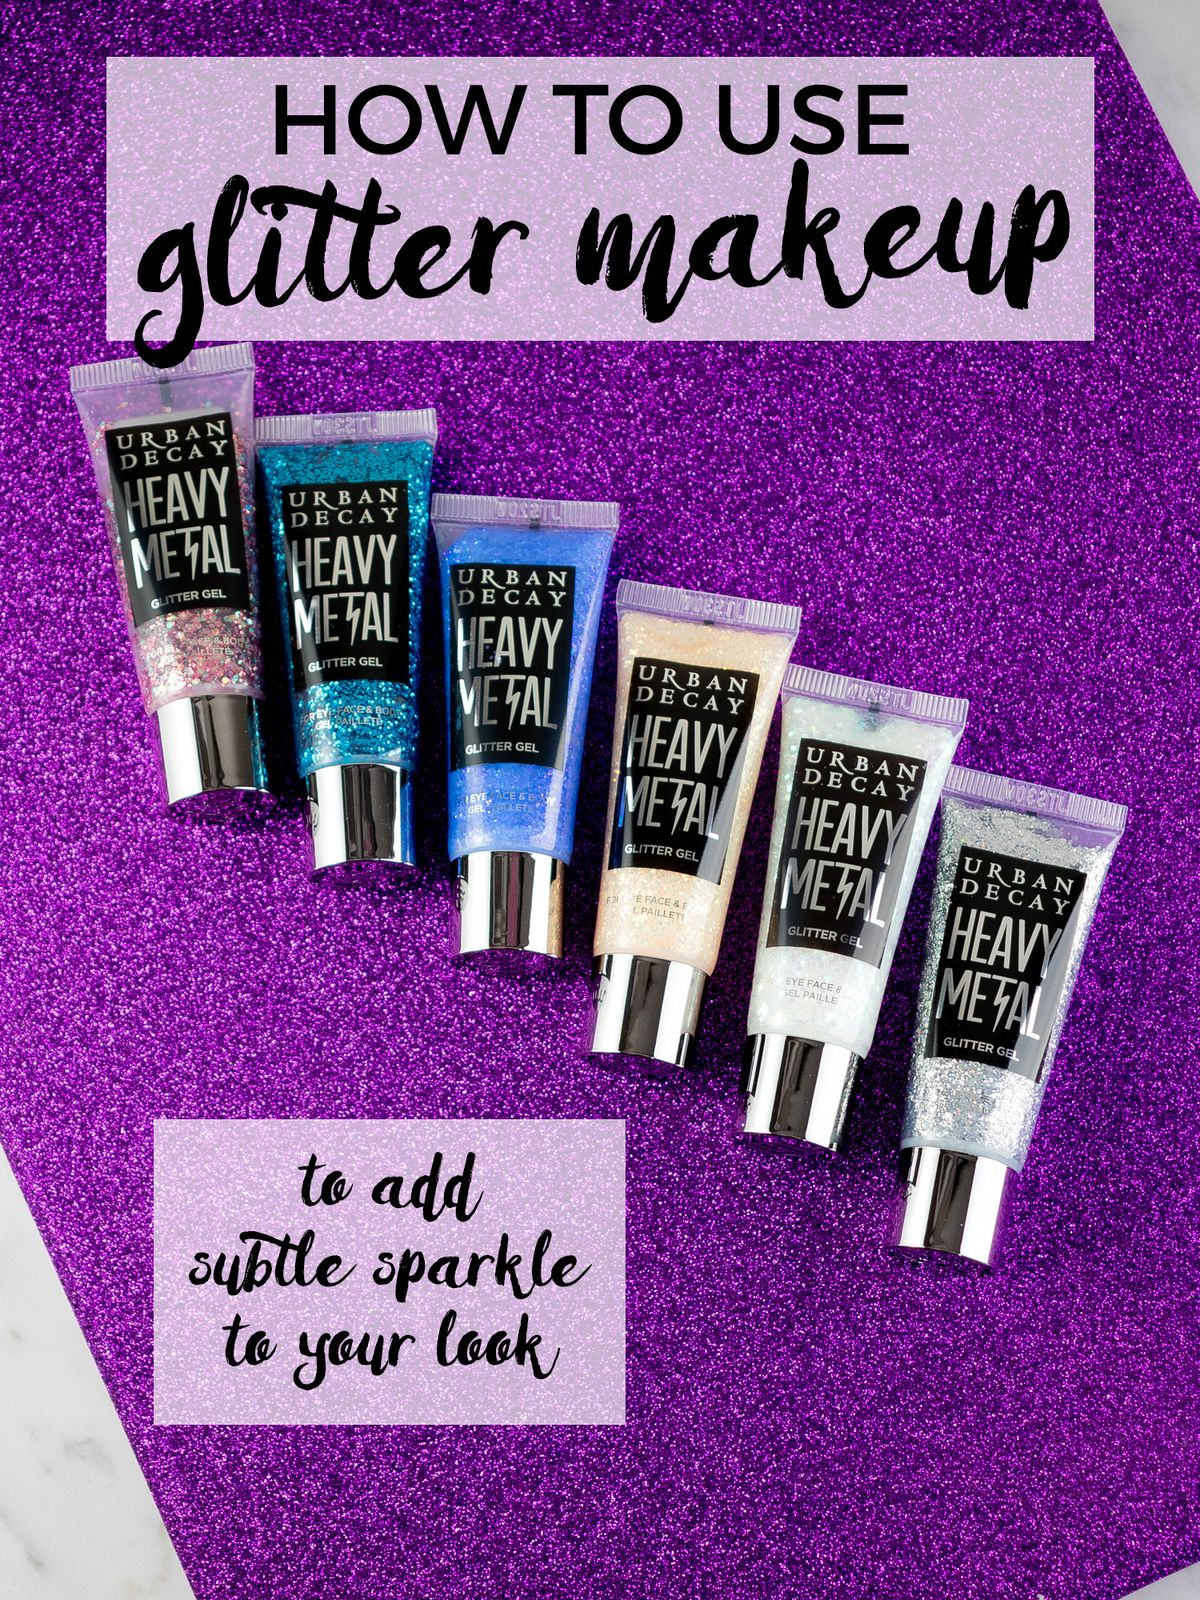 How to Use Glitter Makeup to Add Subtle Sparkle to Your Look